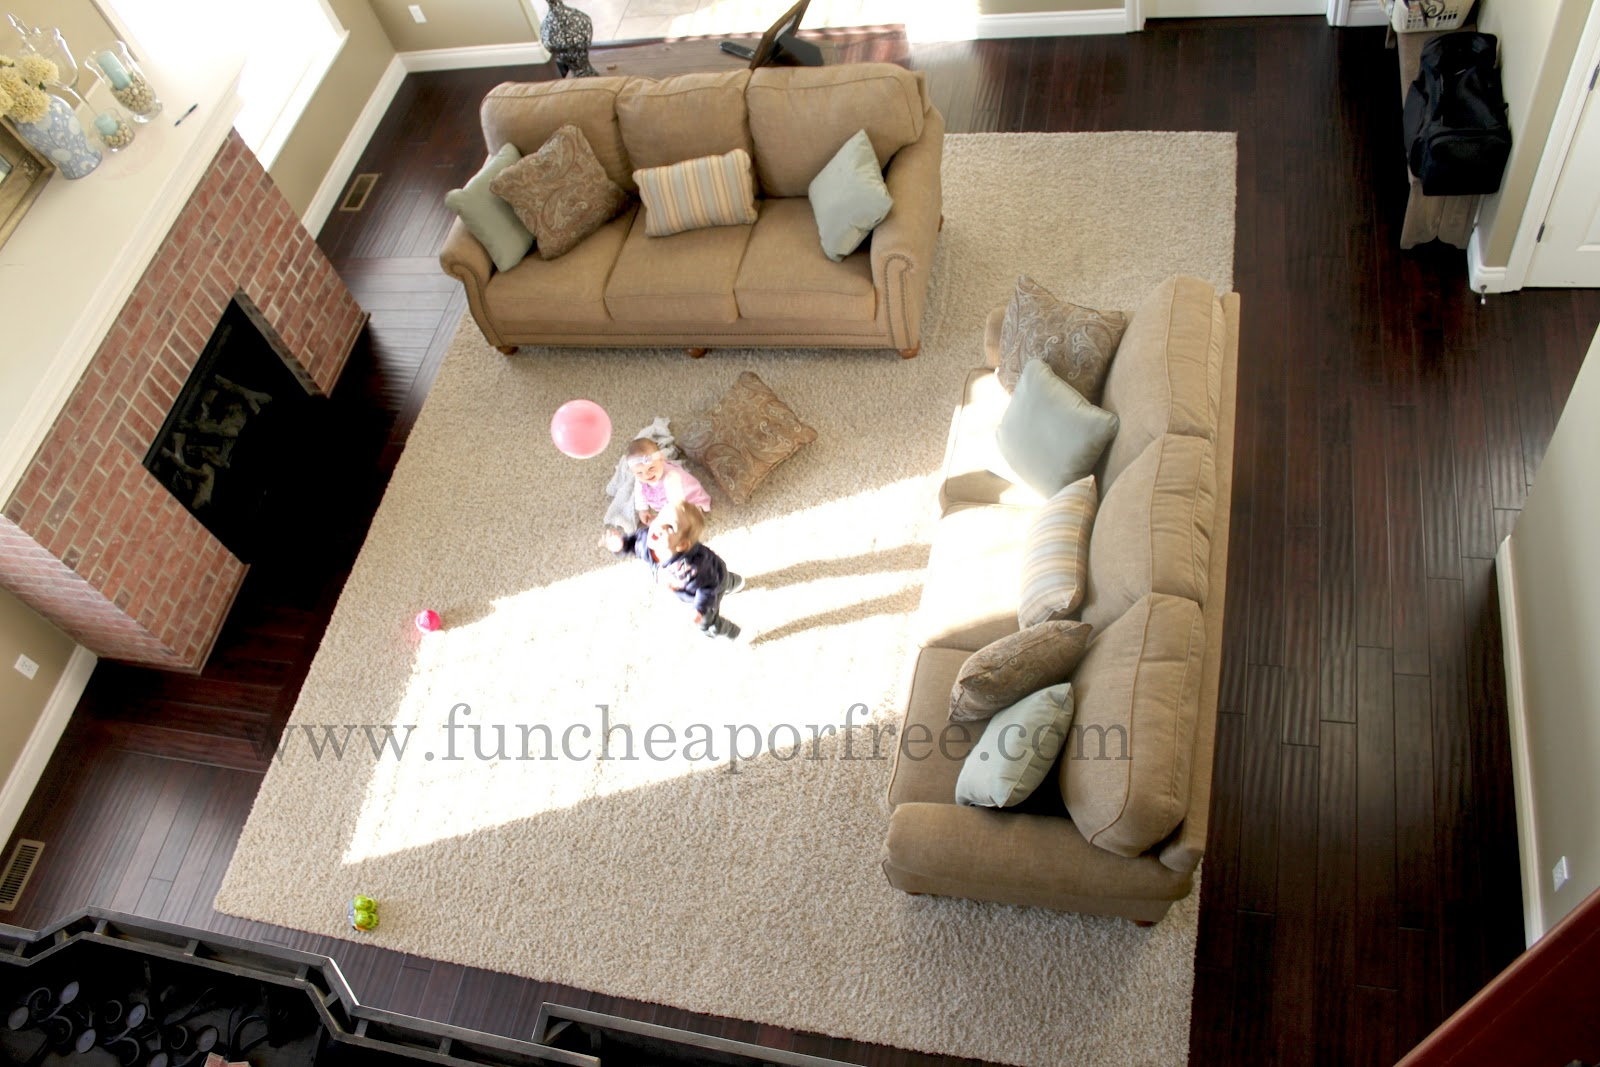 Cheap Living Room Carpets 2 Couch Ideas How To Make An Area Rug Out Of Remnant Carpet Fun Or Free